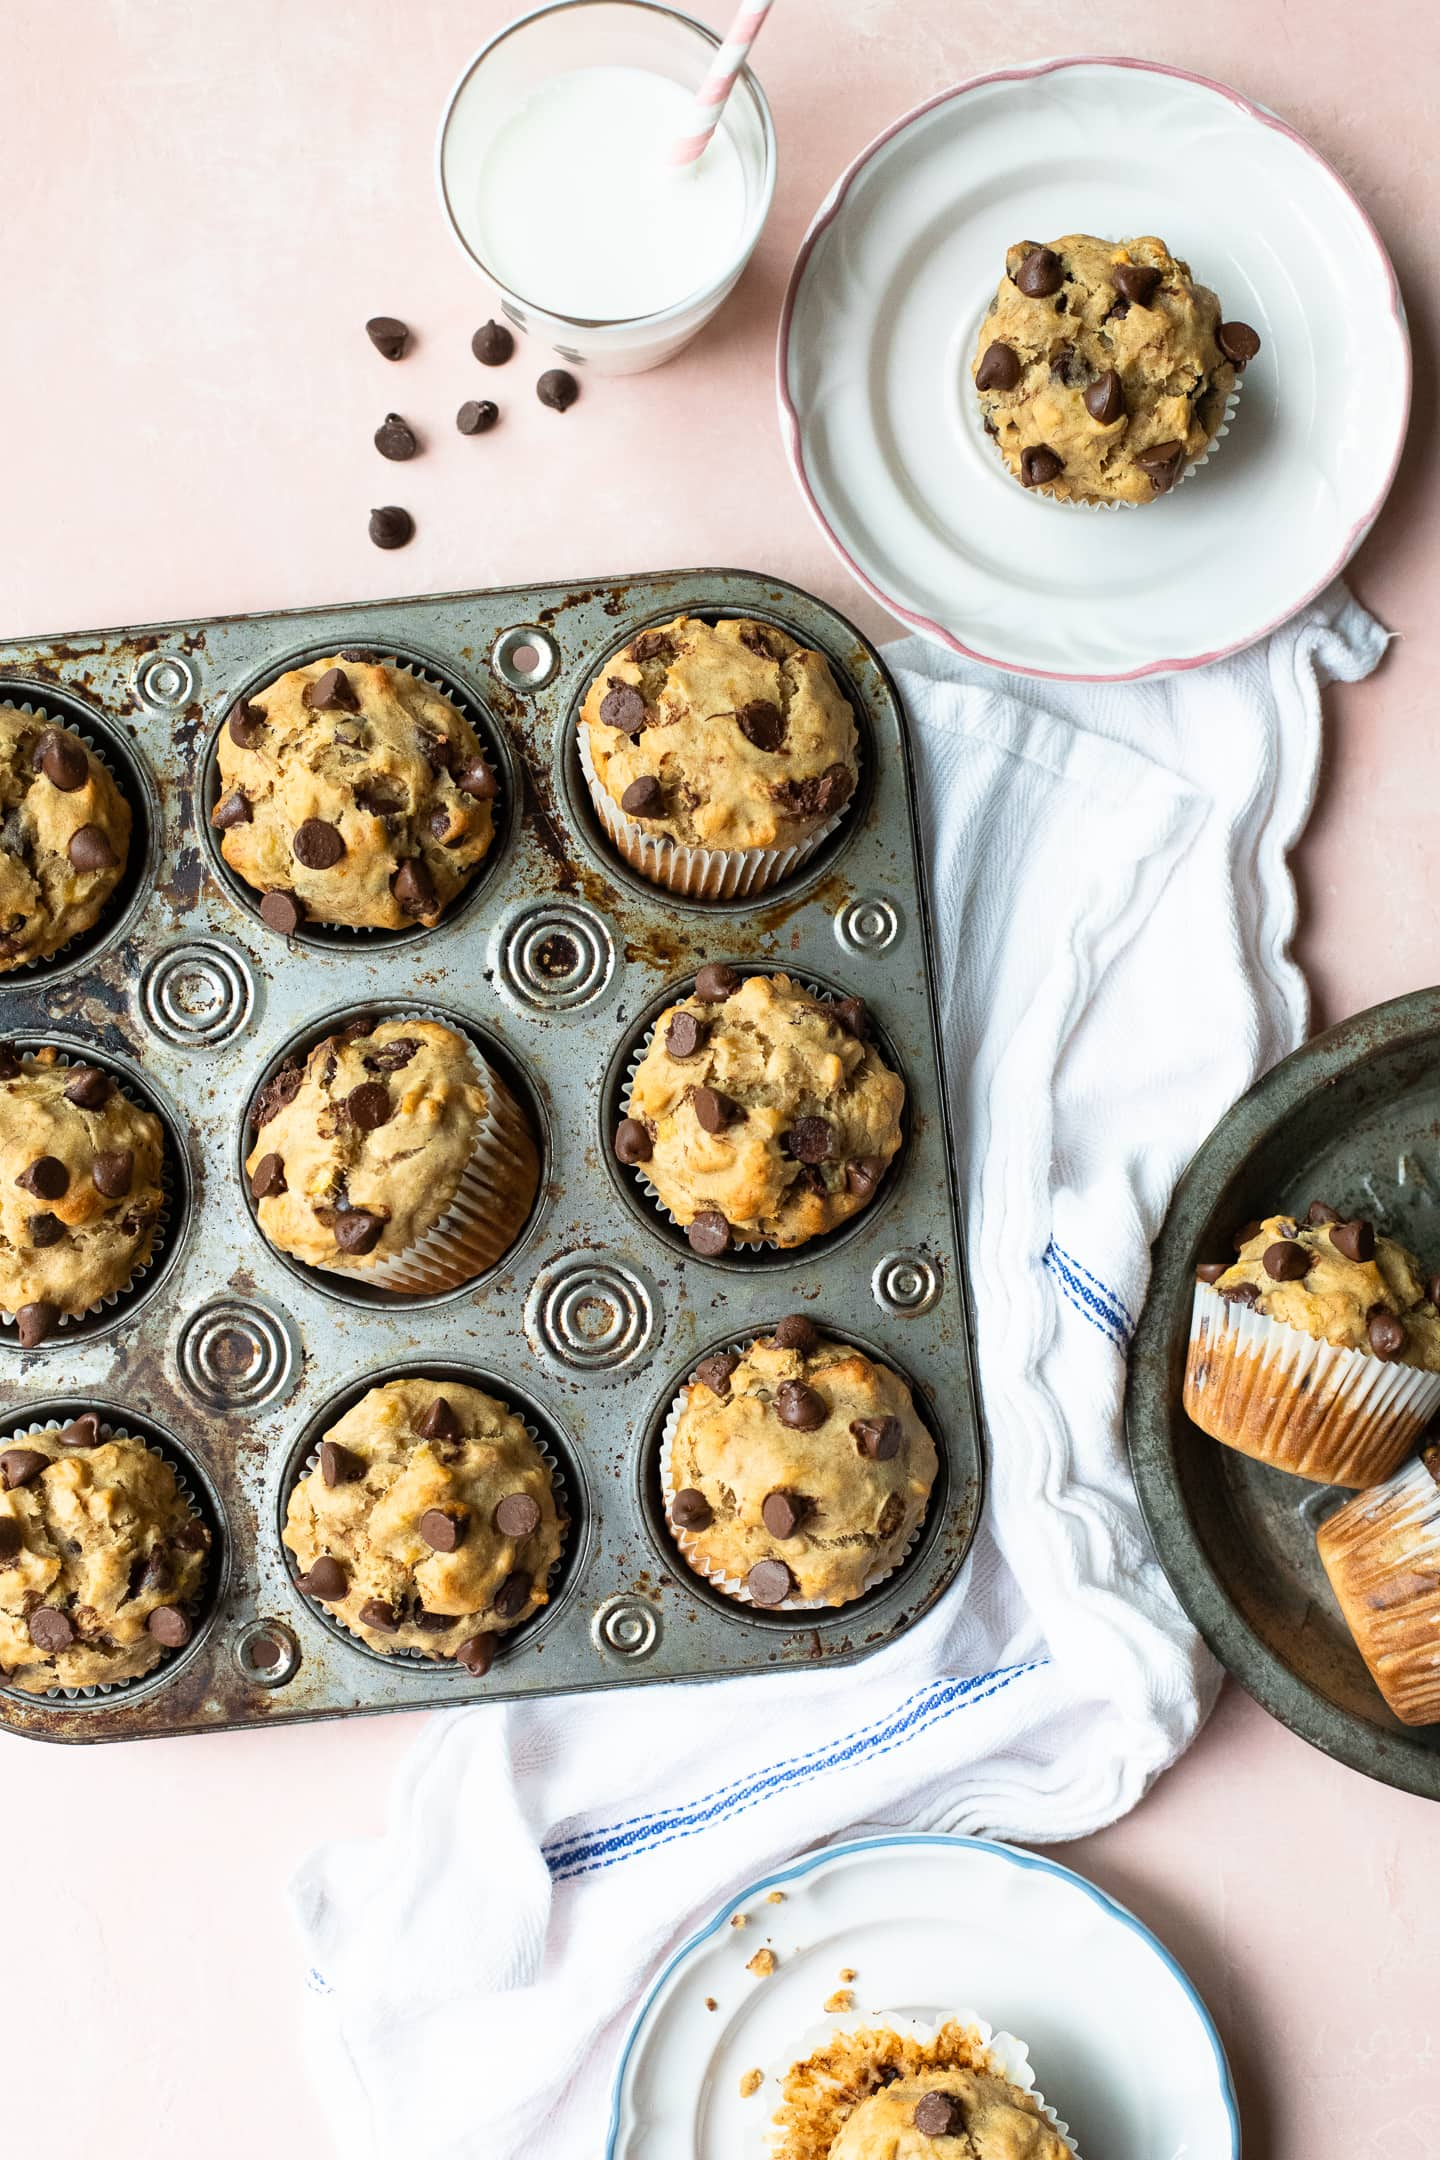 Overhead view of Peanut Butter Banana Chocolate Chip Muffins in a muffin tray, along with extra muffins on plates, over a light pink backdrop.